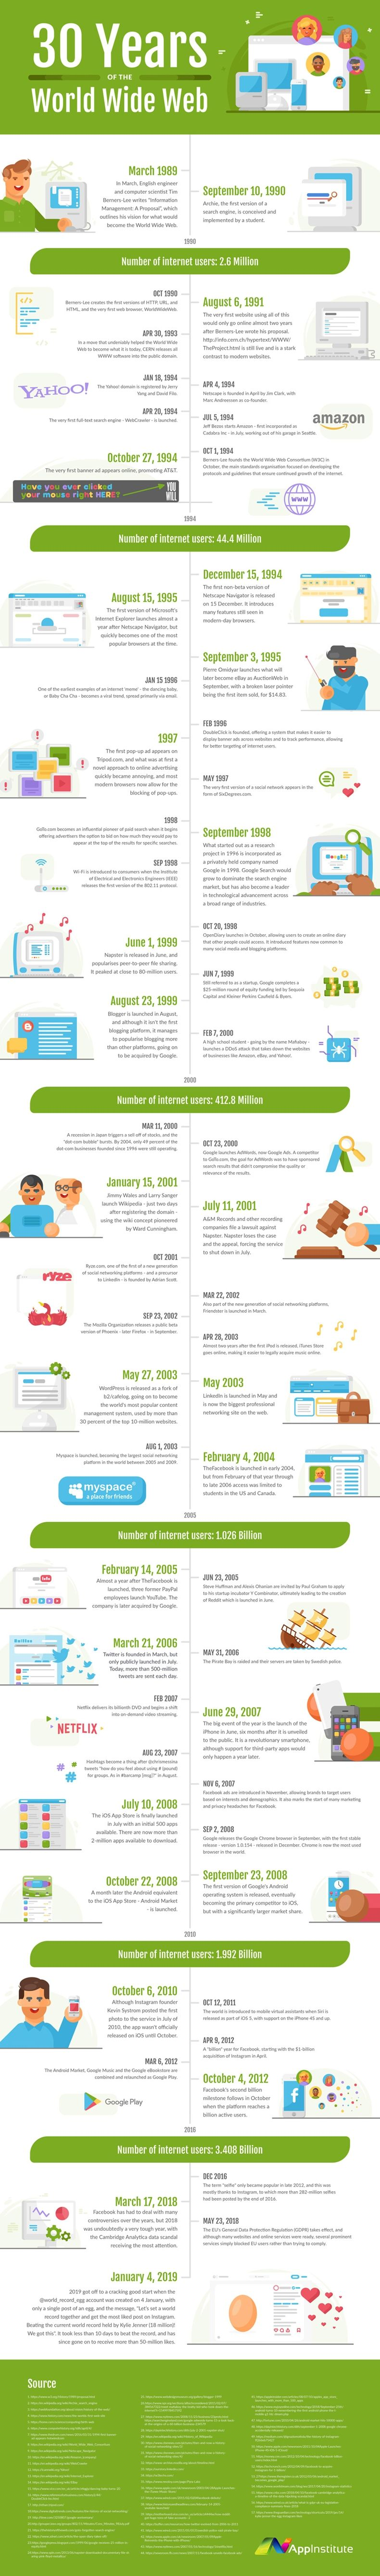 30 years of World Wide Web [Infographic]